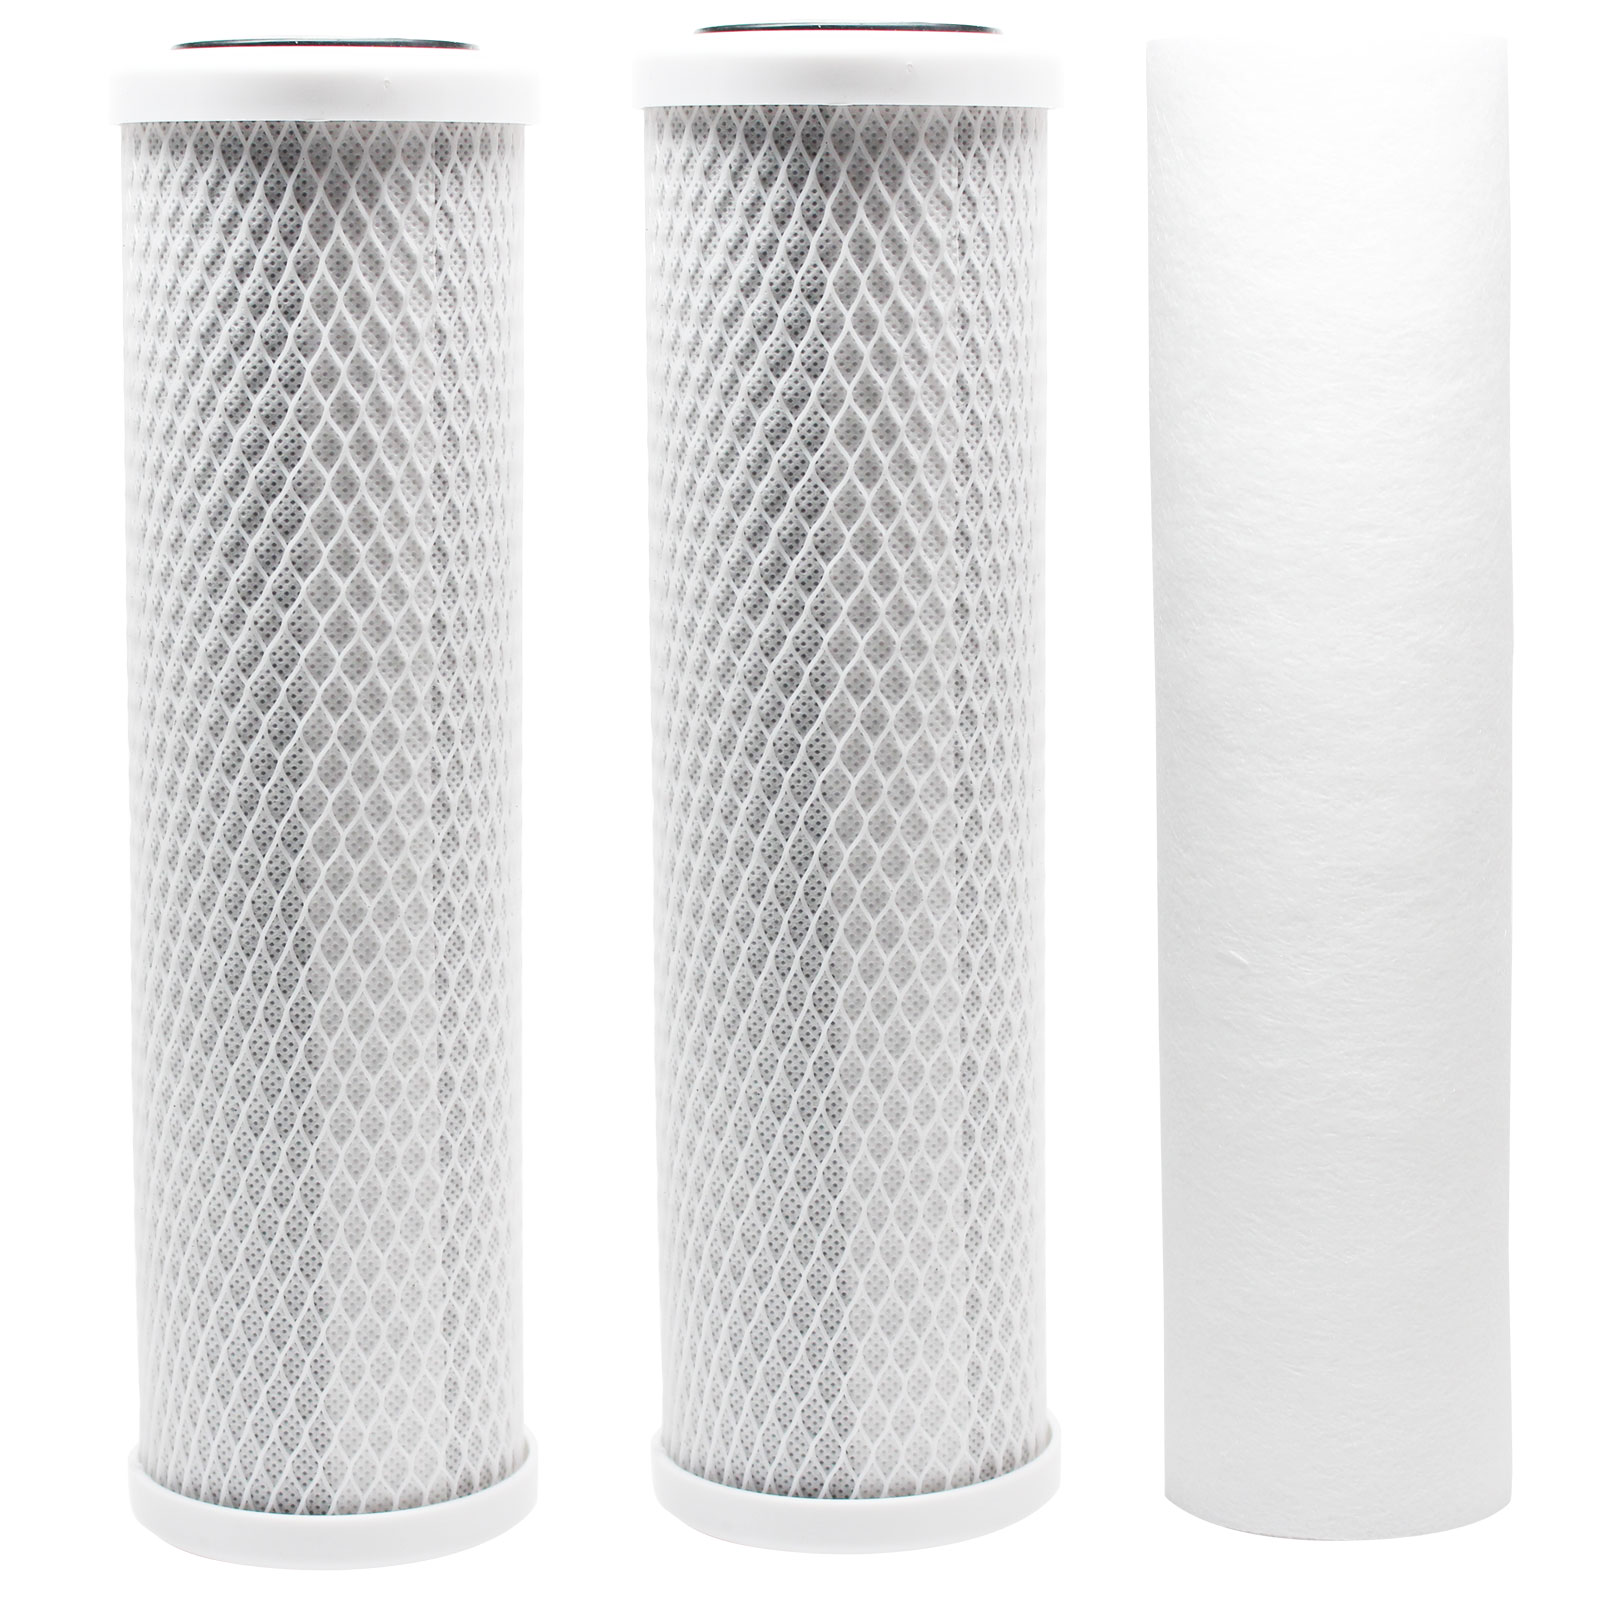 Replacement Filter Kit for Krystal Pure KR10 RO System - Includes Carbon Block Filters & Polypropylene Sediment Filter - Denali Pure Brand